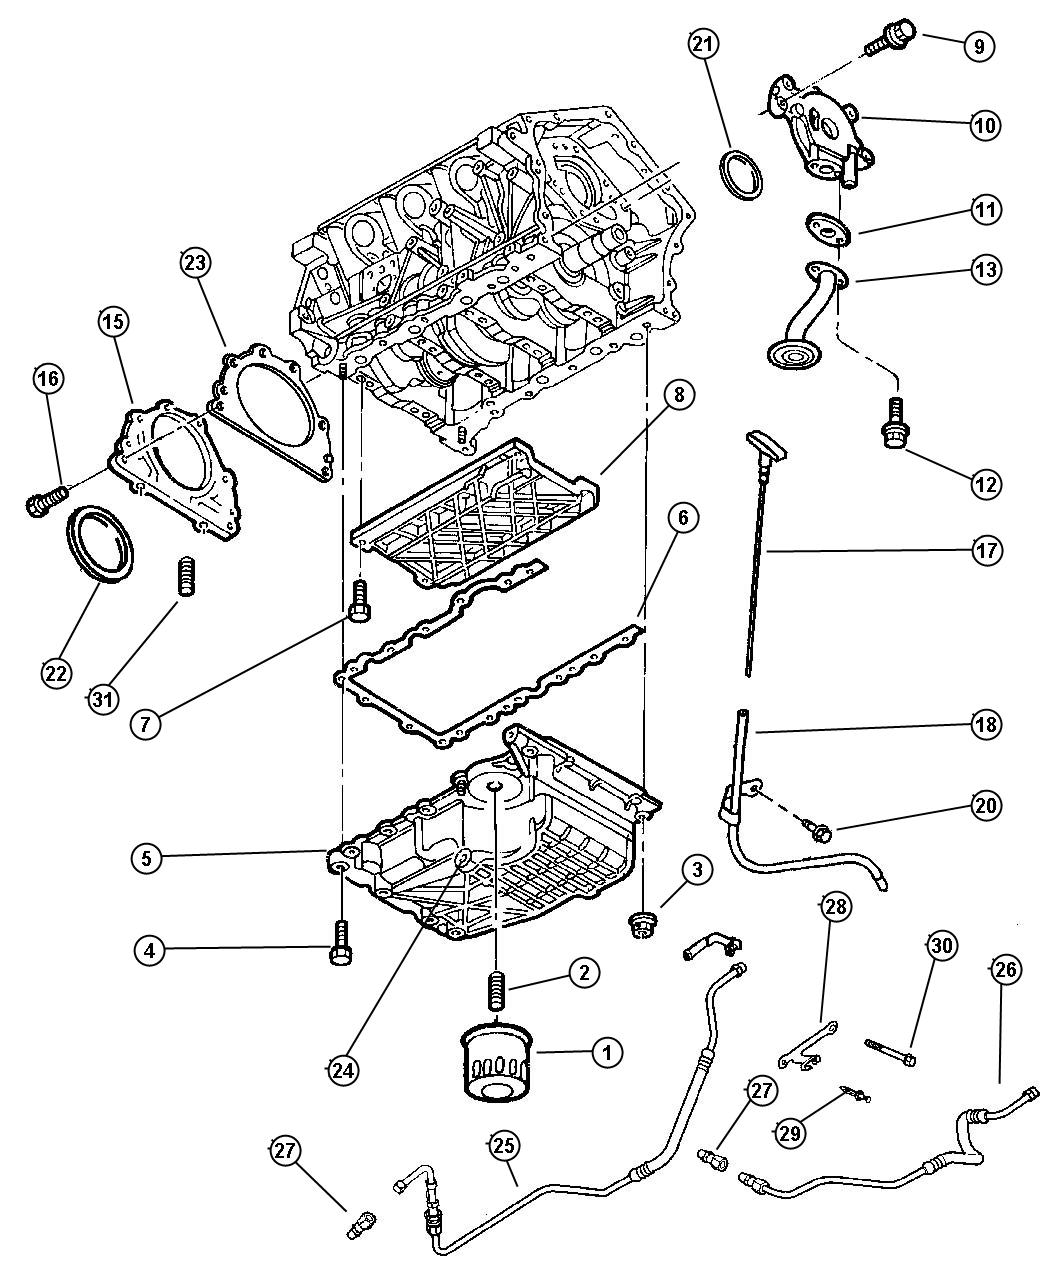 Dodge Dakota Brake Line Diagram besides Quadratrac furthermore 1978 86 Jeep Cj Replacement Fuel Tank 15 Gallon in addition HP PartList besides Jeep CJ2A Frame Dimensions. on jeep cj7 replacement parts